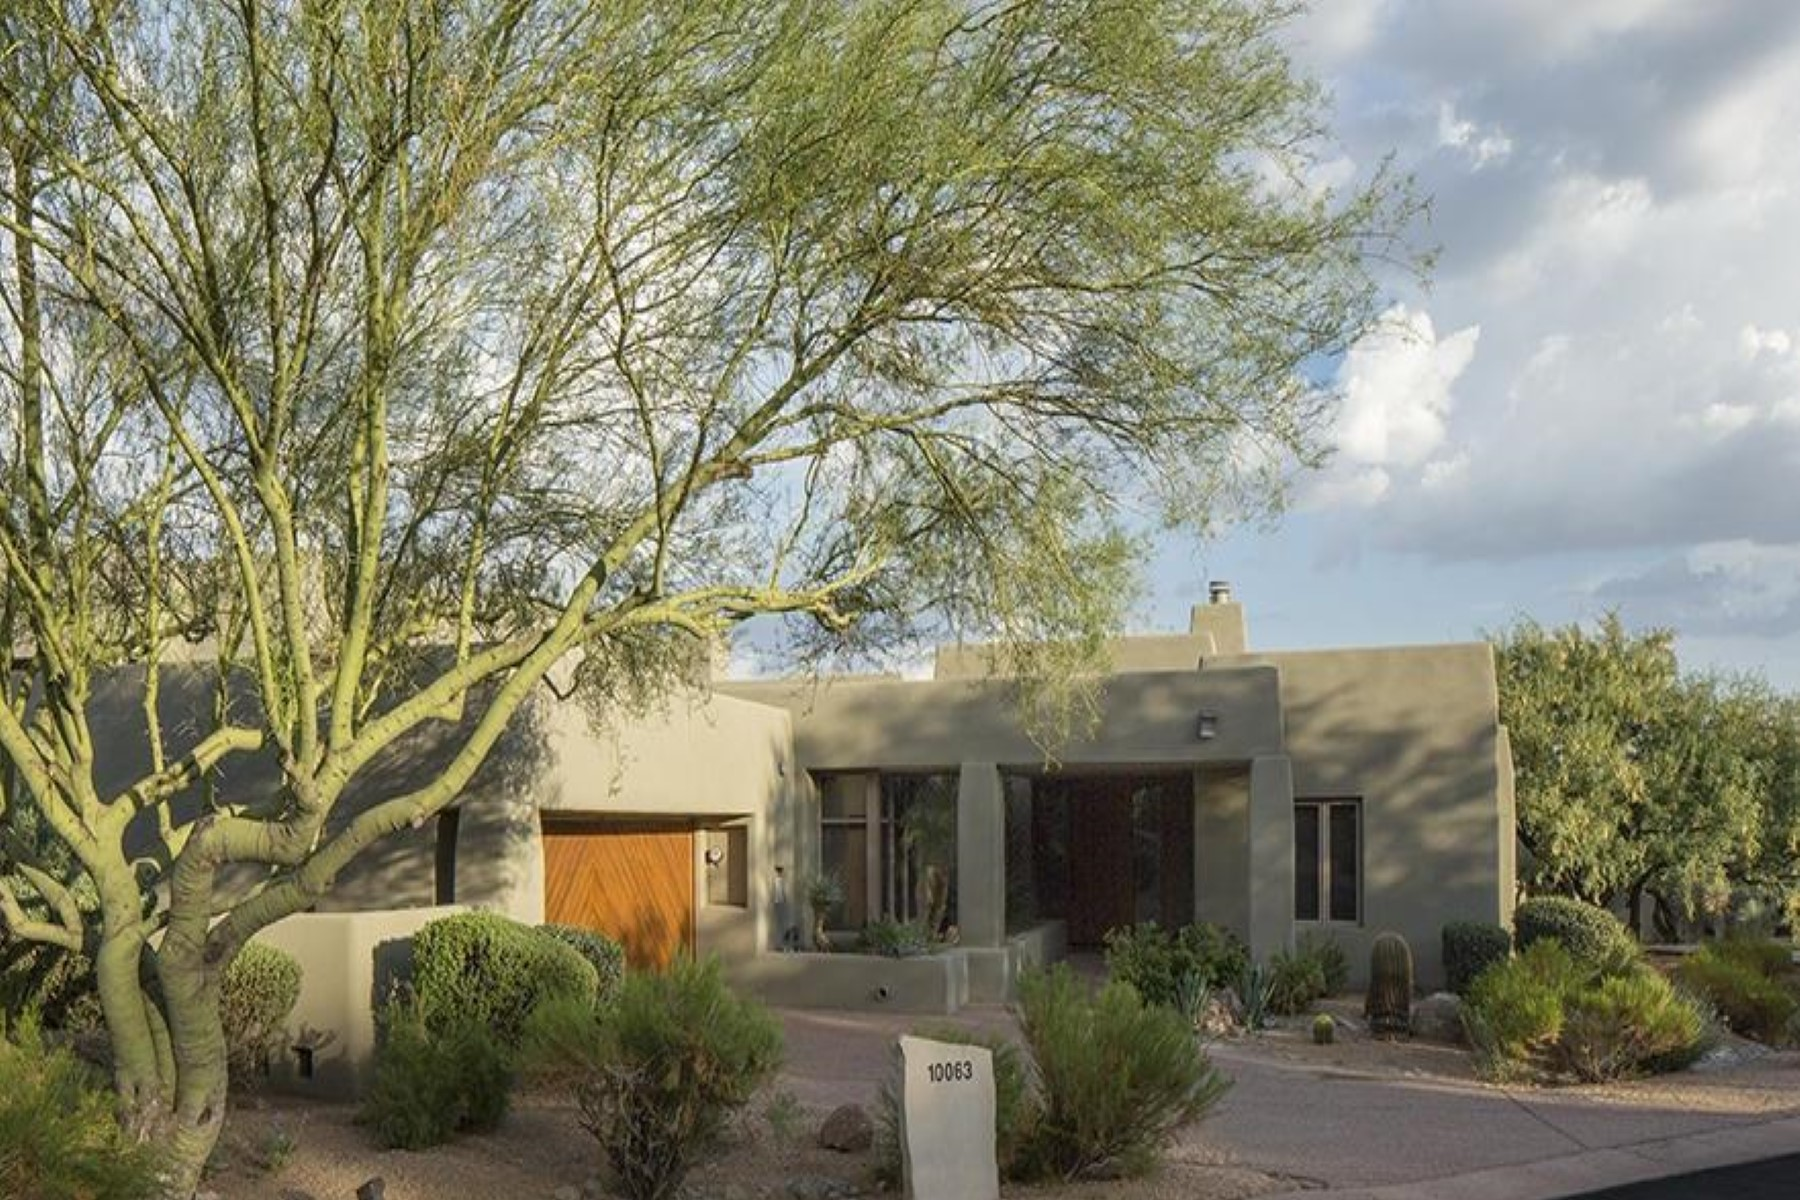 Single Family Home for Sale at Newly furnished two master suite Sonoran Cottage. 10063 E GRAYTHORN DR Scottsdale, Arizona 85262 United States